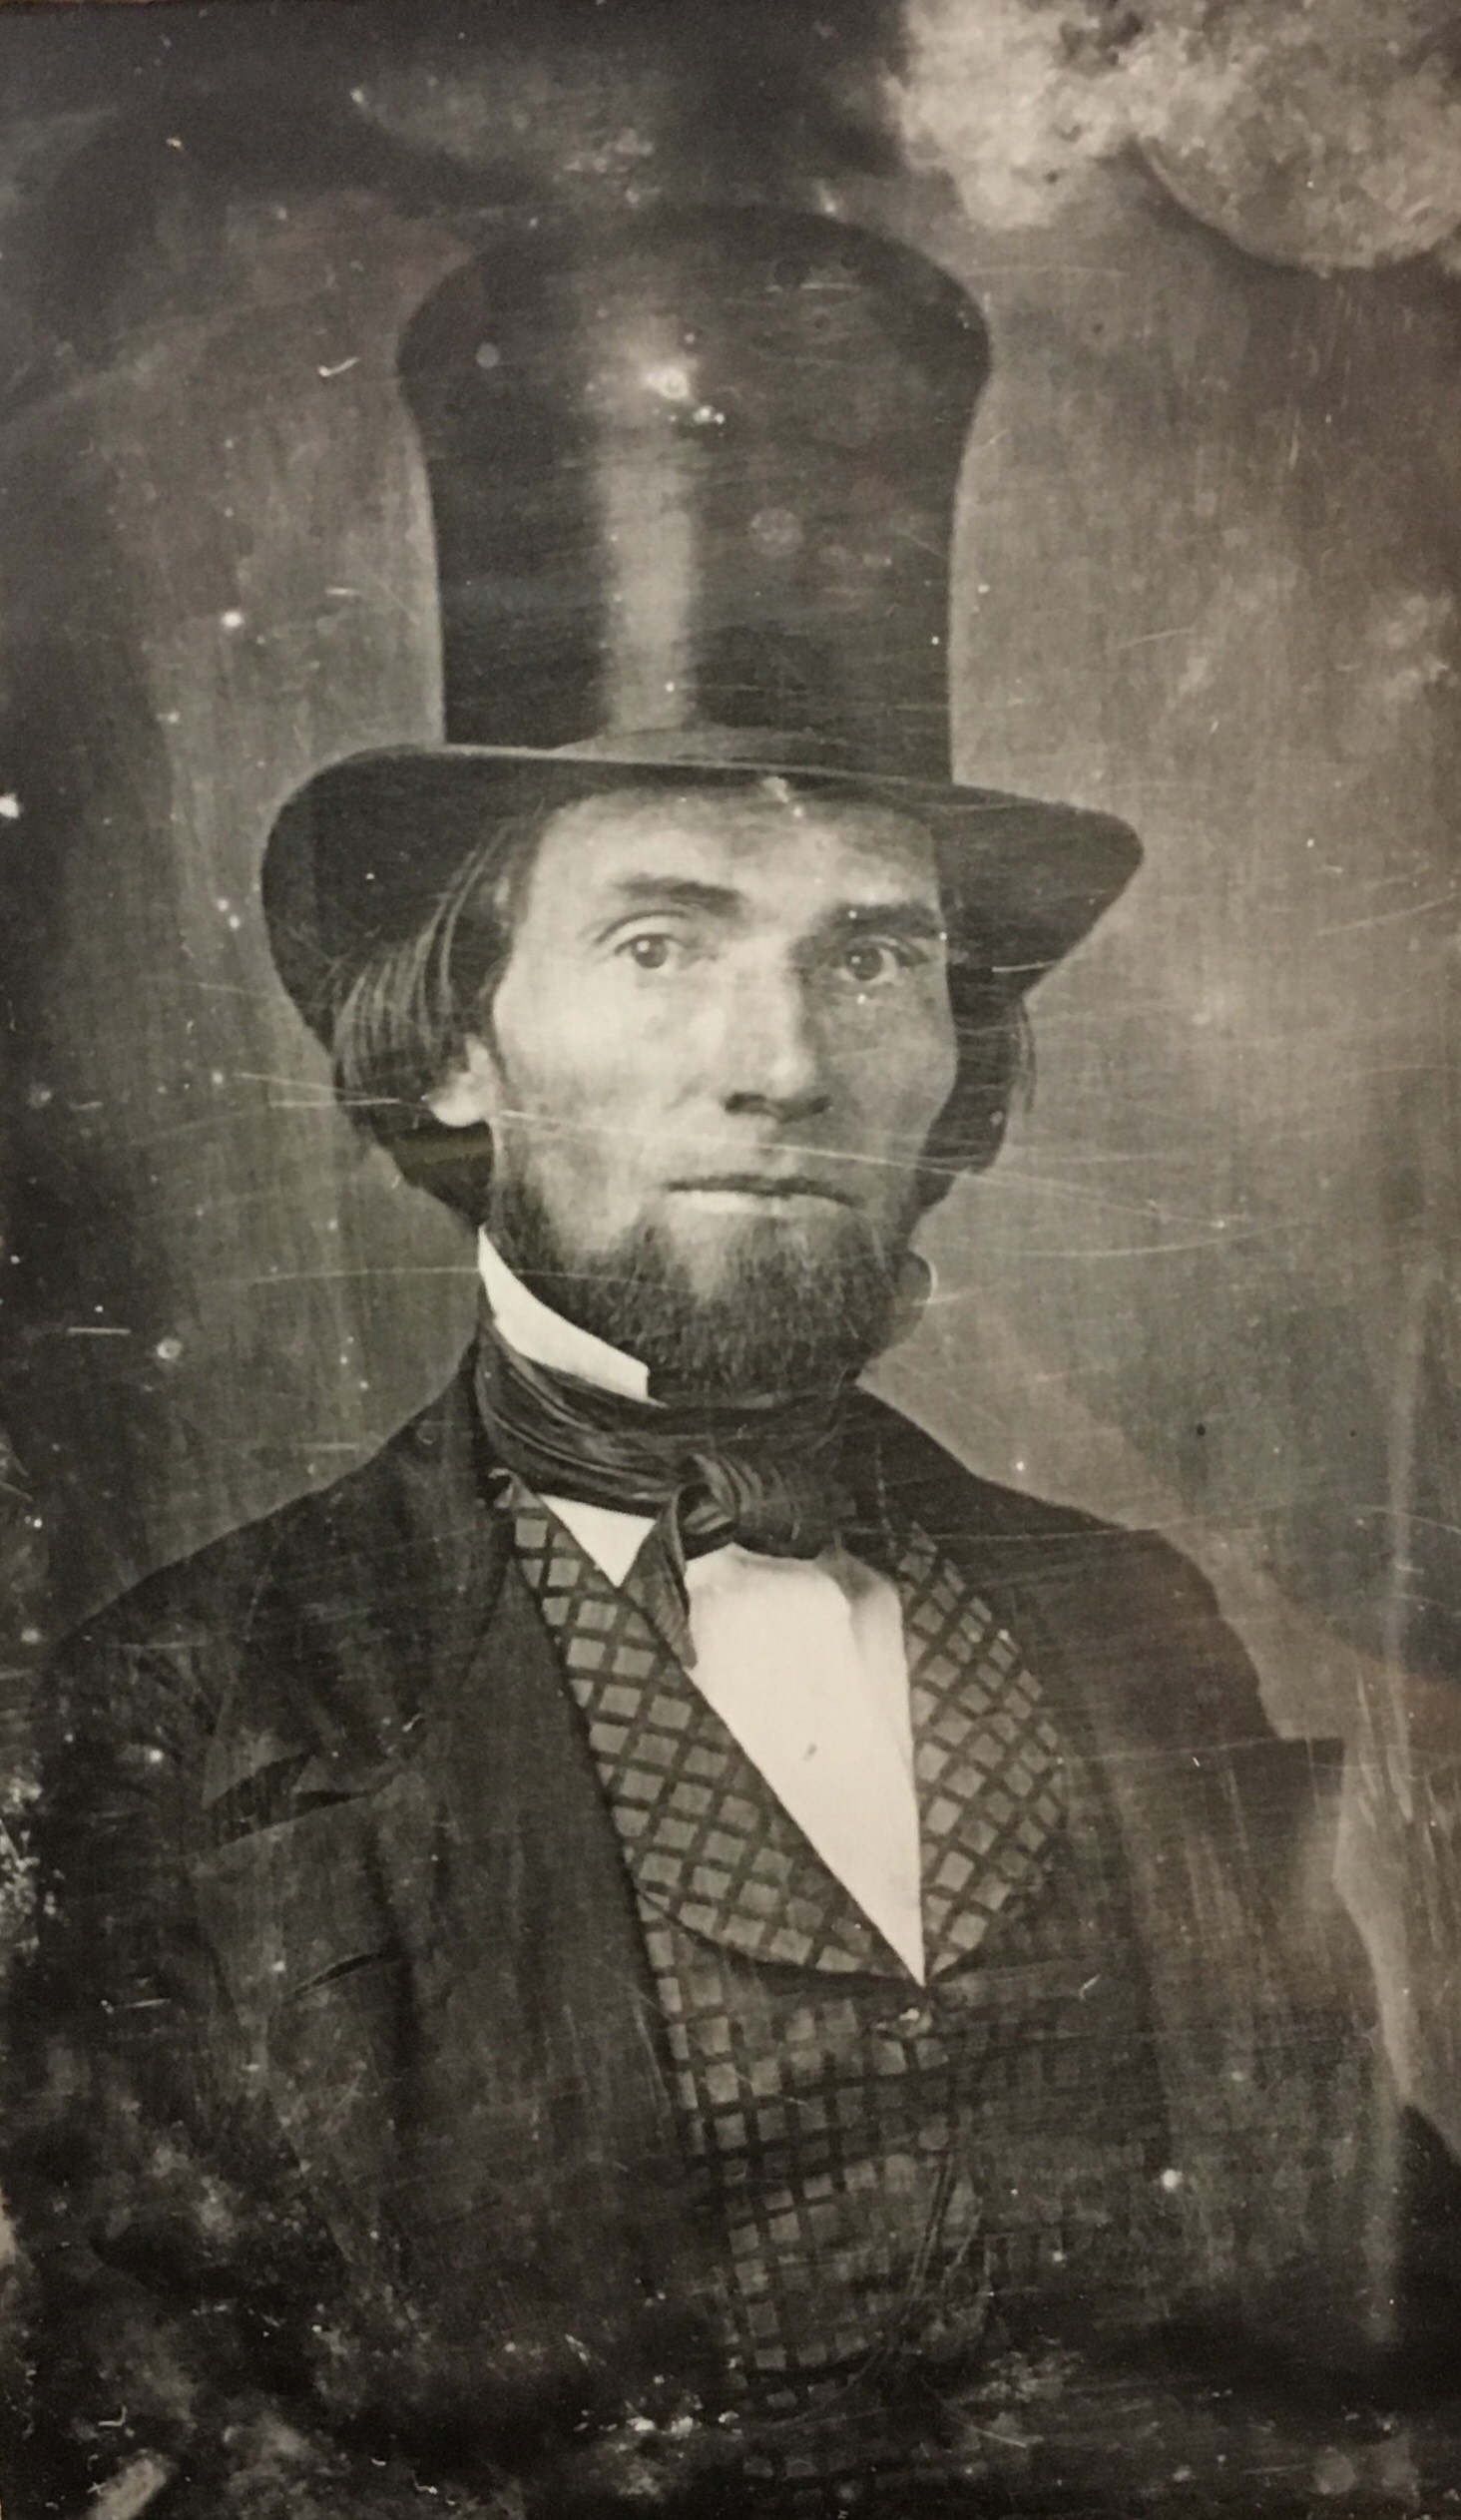 Boot maker, Civil War veteran, postmaster, state senator, and education advocate, Z. D. Ramsdell was one of Ceredo's most prominent citizens.